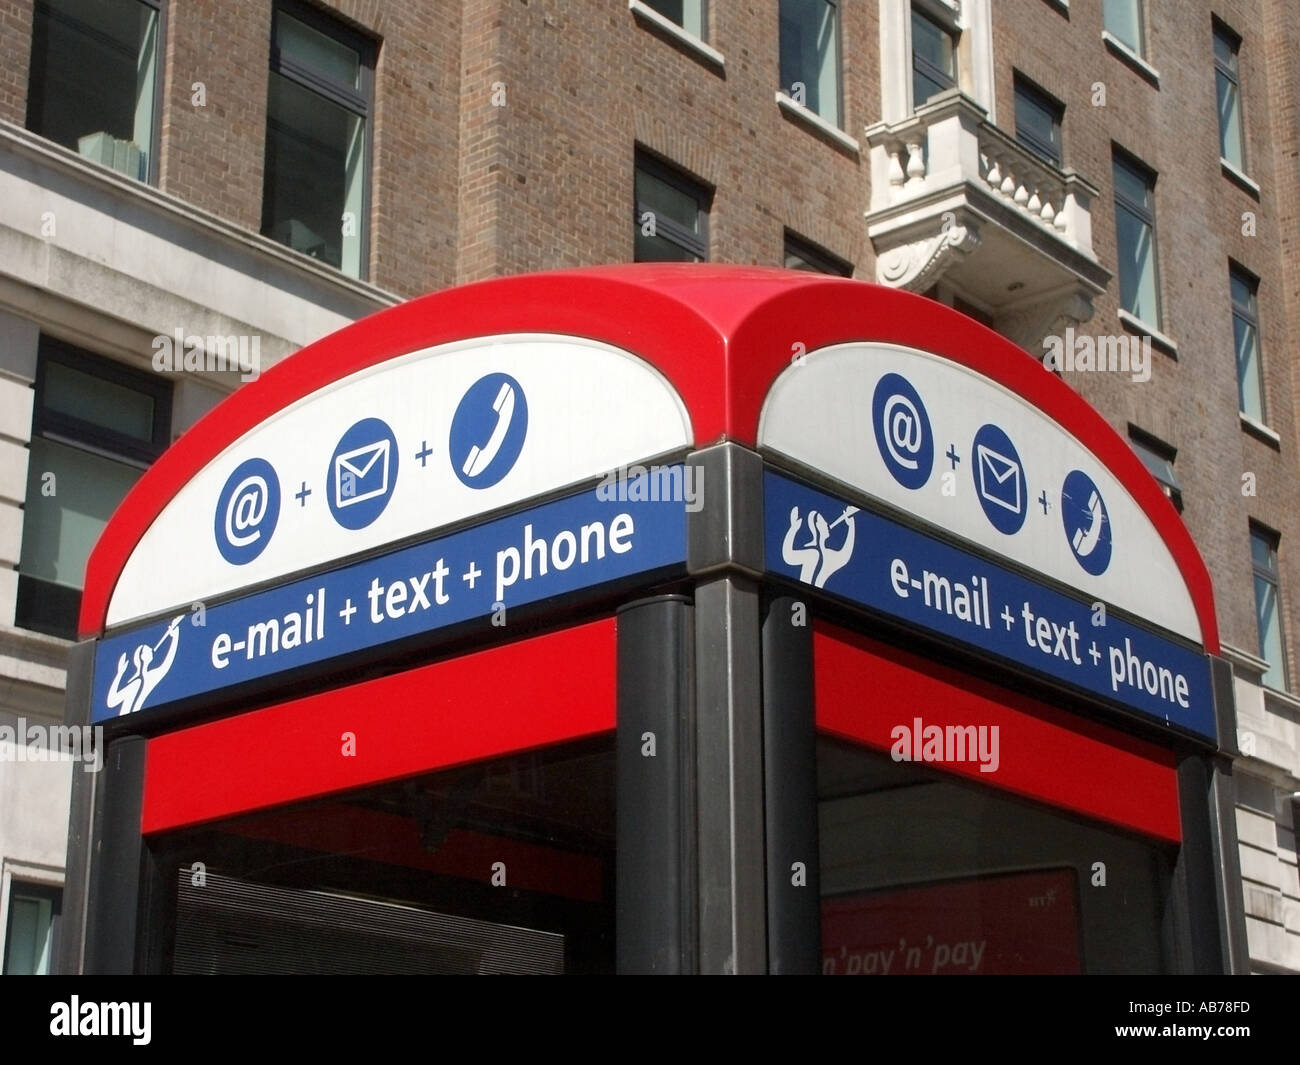 Holborn Greater London phone boxes offering email and text service in addition to conventional telephone facilities - Stock Image